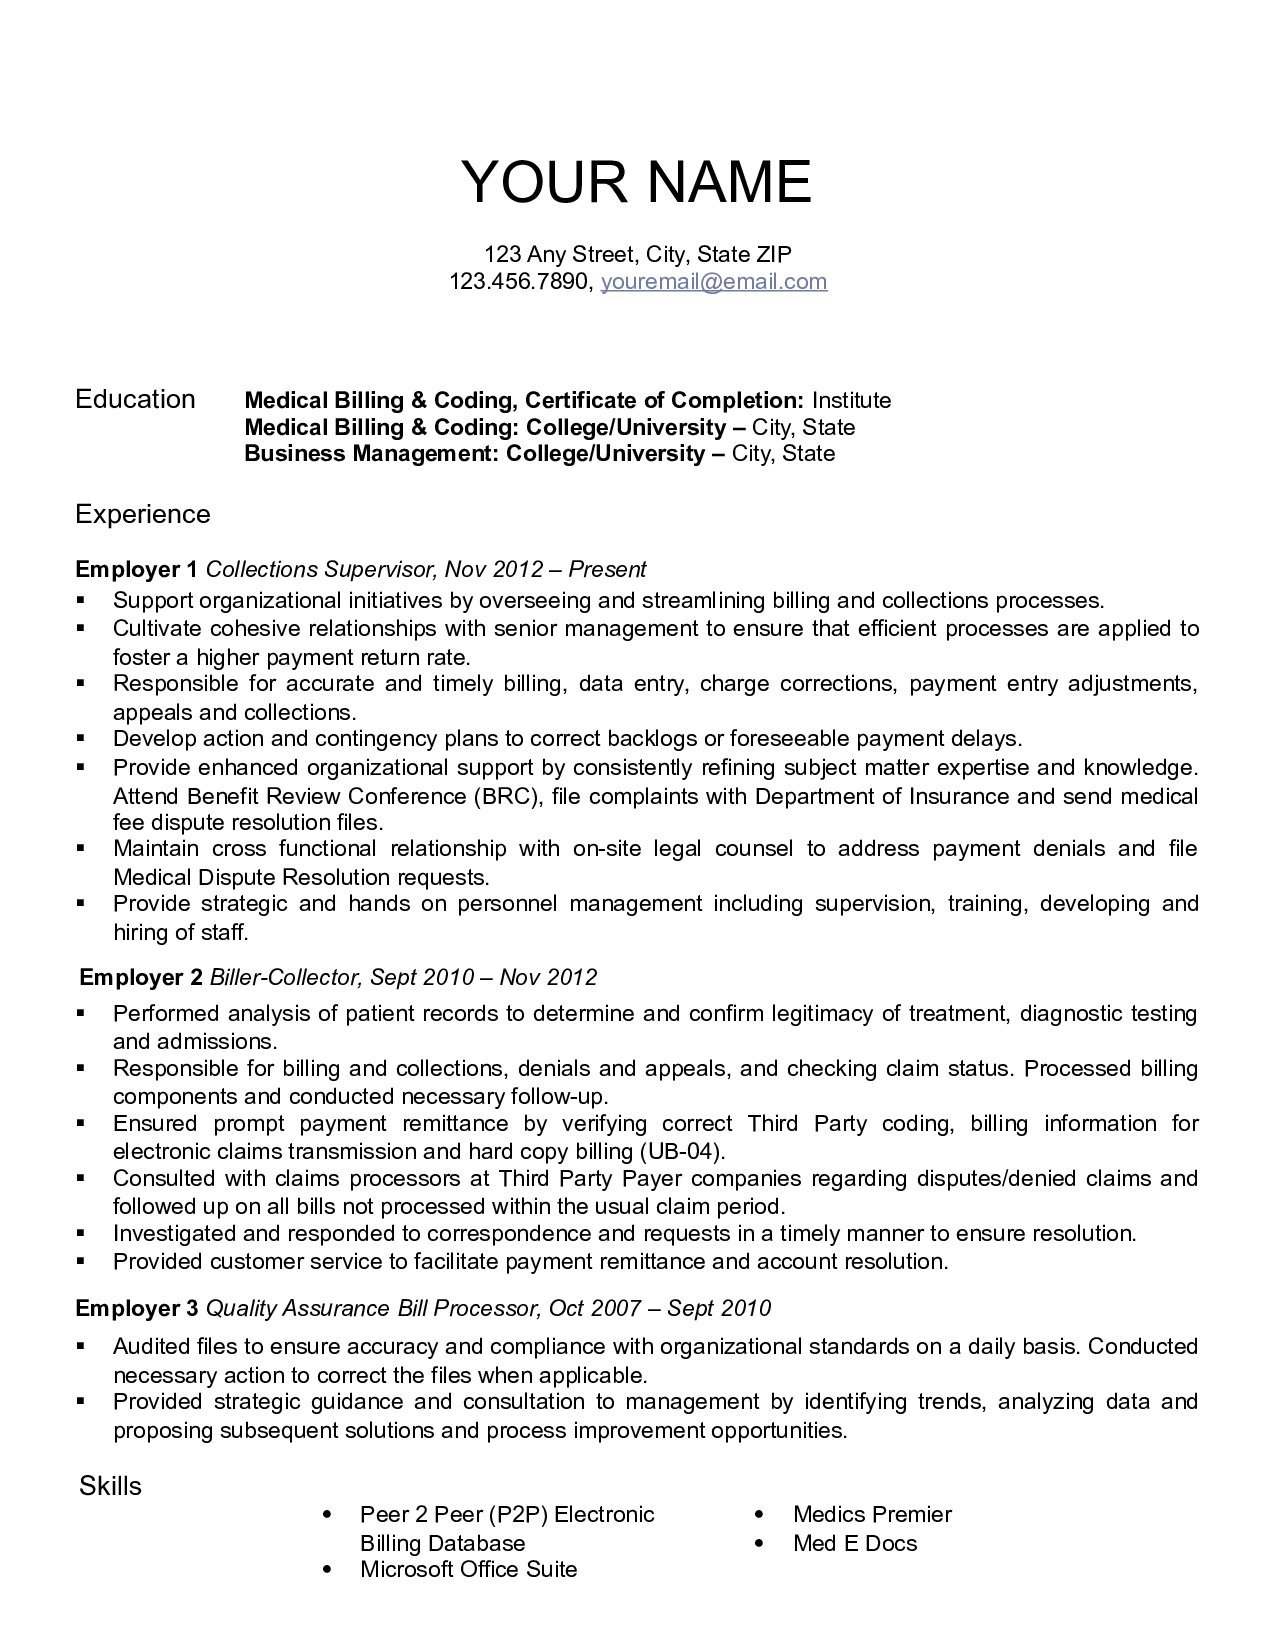 resume for medical billing and coding websites that help with homework licensed attorney Resume Billing And Coding Resume